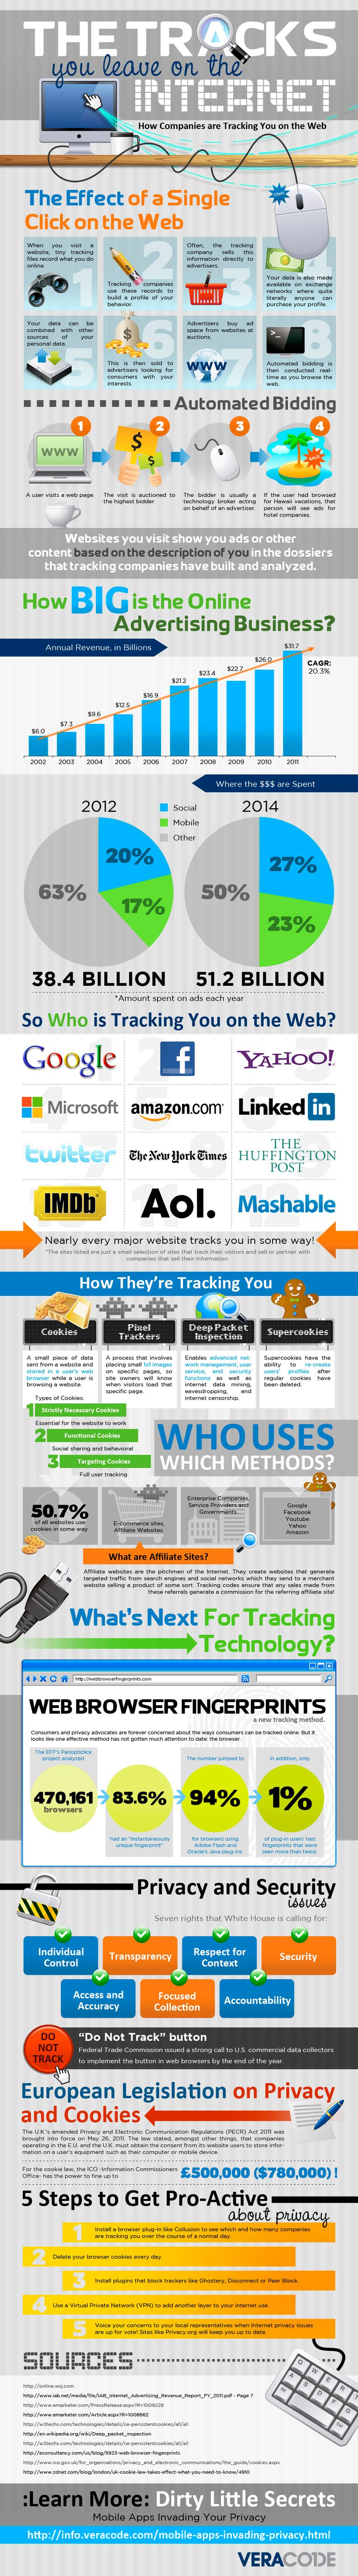 How-companies-track-you-on-the-web-veracode